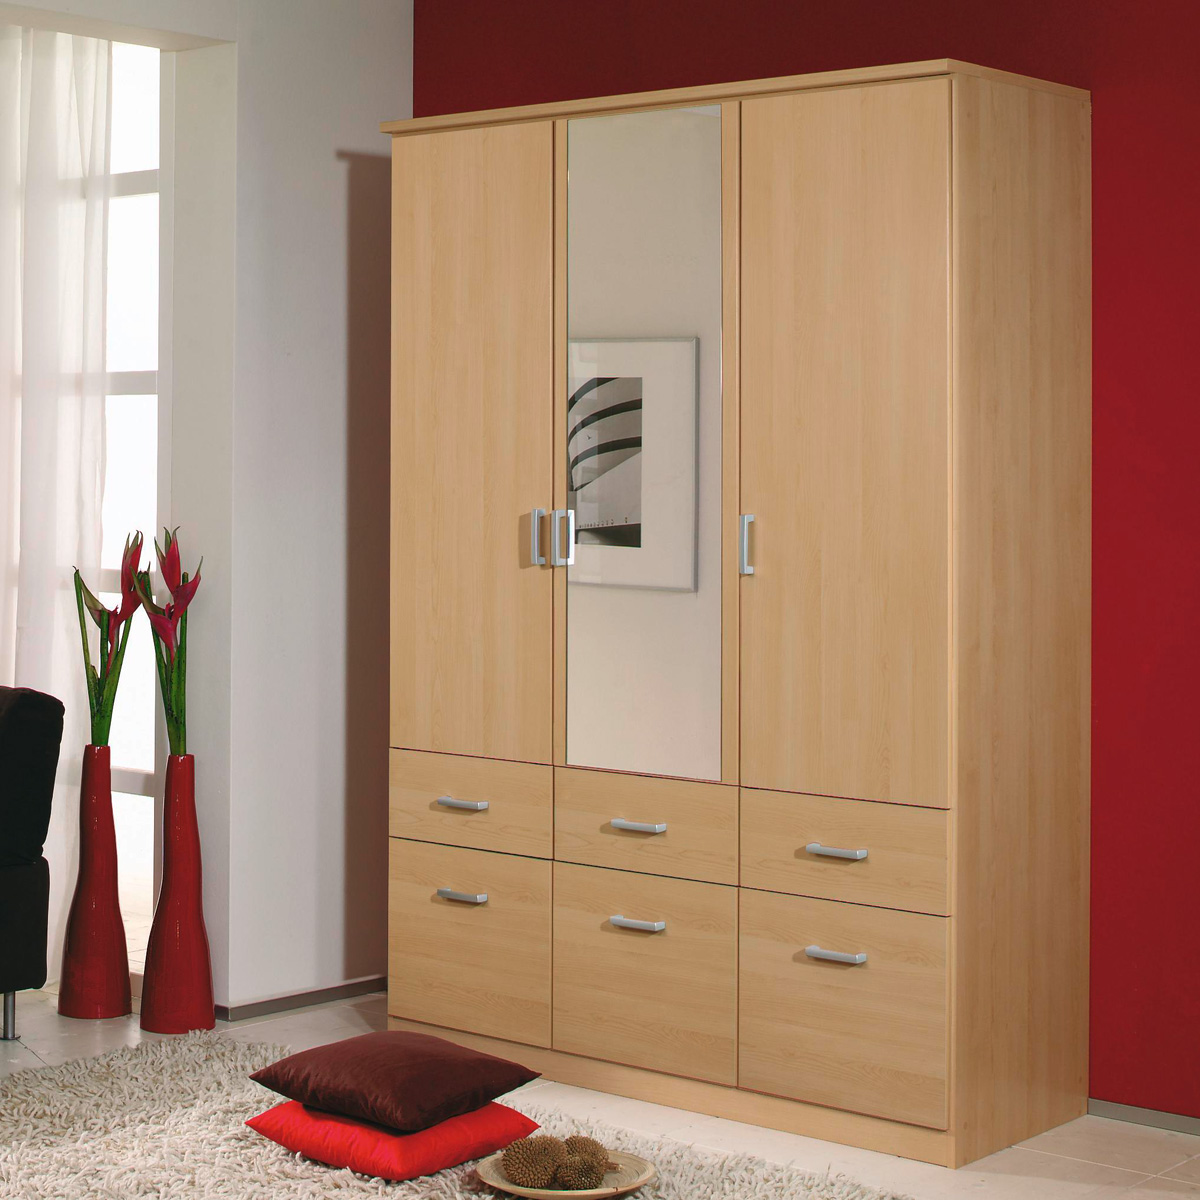 kleiderschrank bremen schrank w scheschrank in buche hell mit spiegel 136 cm ebay. Black Bedroom Furniture Sets. Home Design Ideas